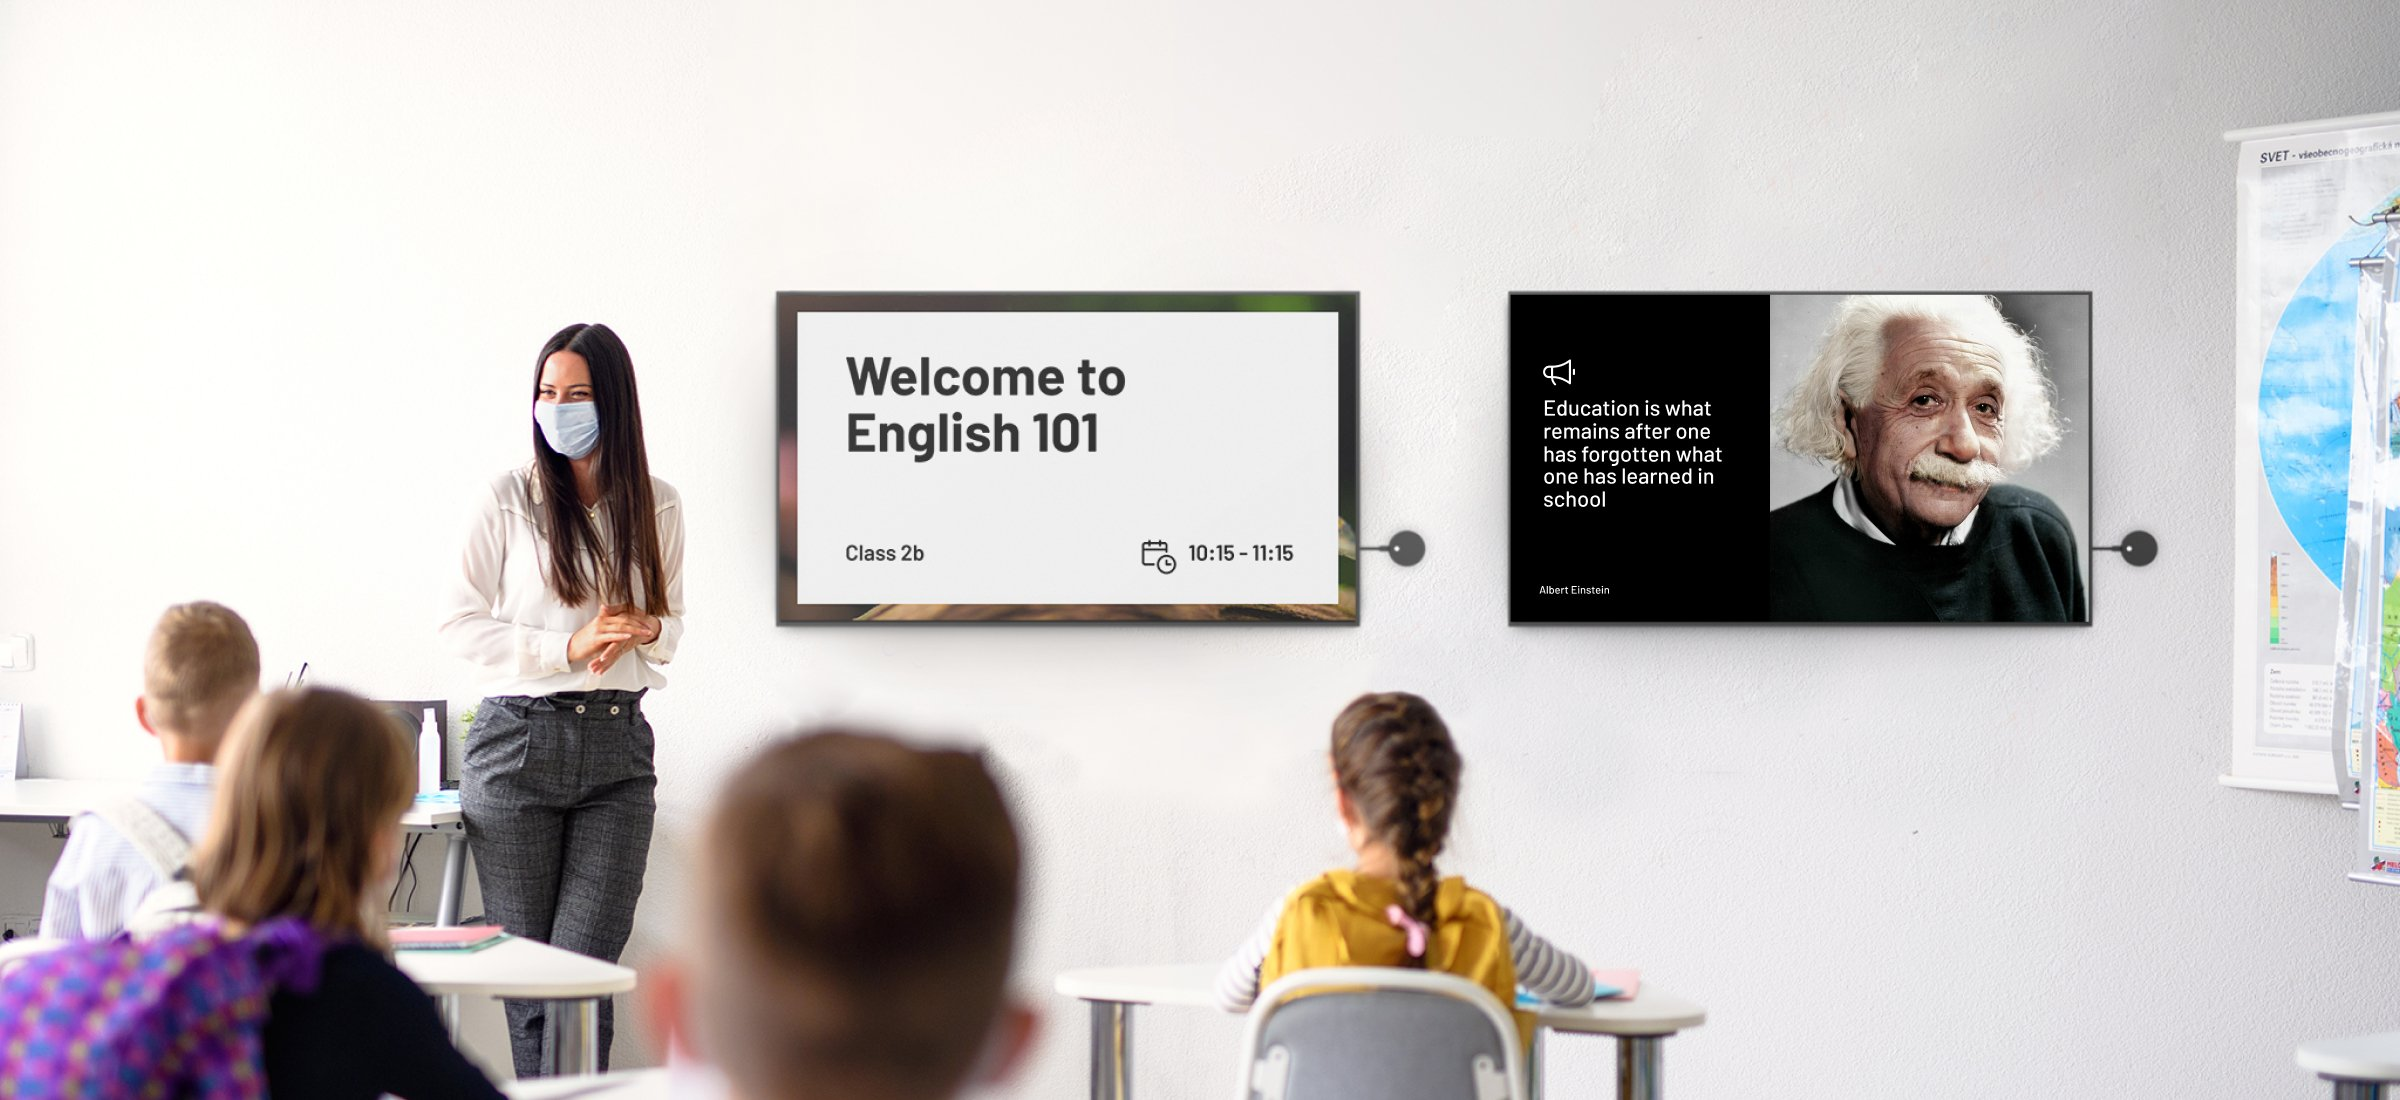 How to use digital signage to improve safety within schools